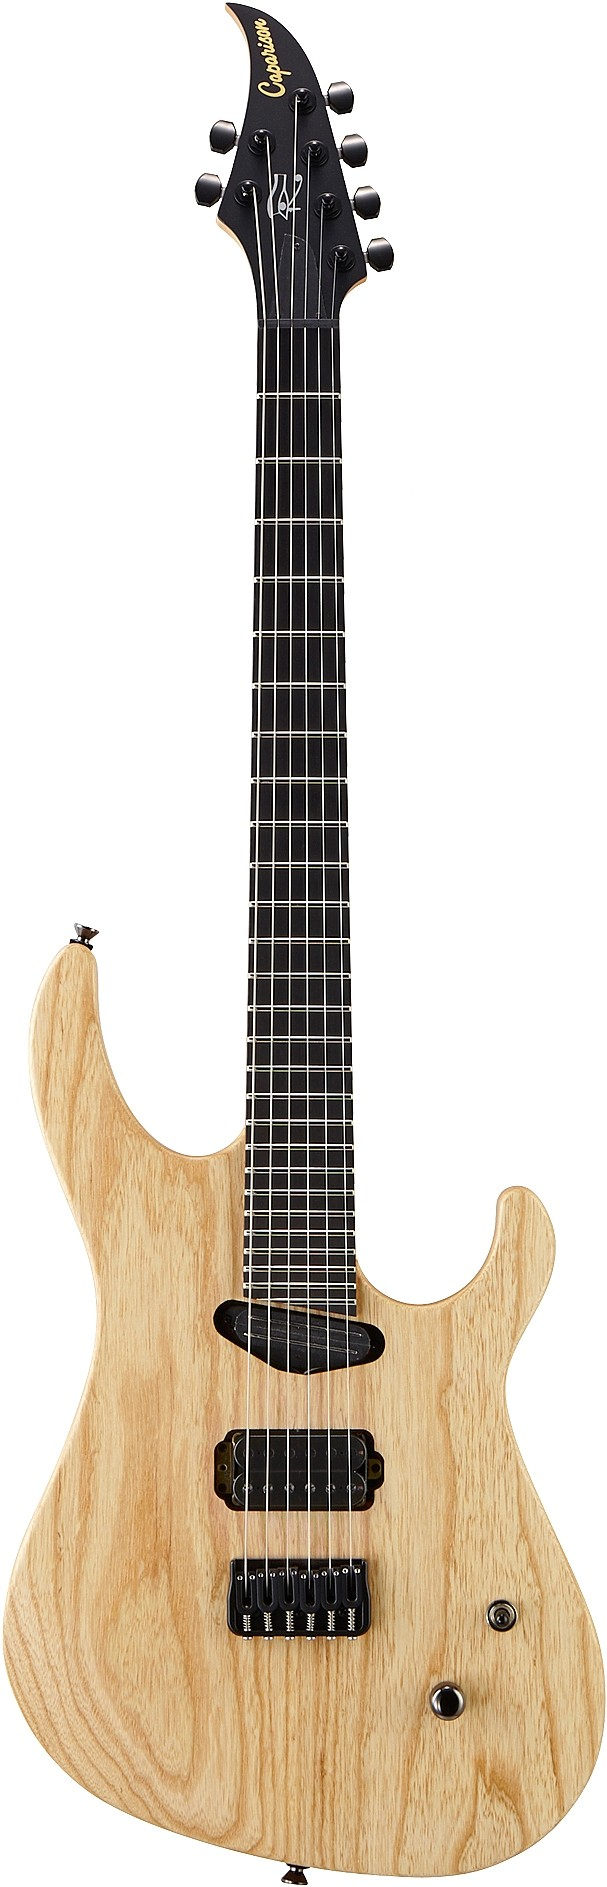 Horus FX-AM by Caparison